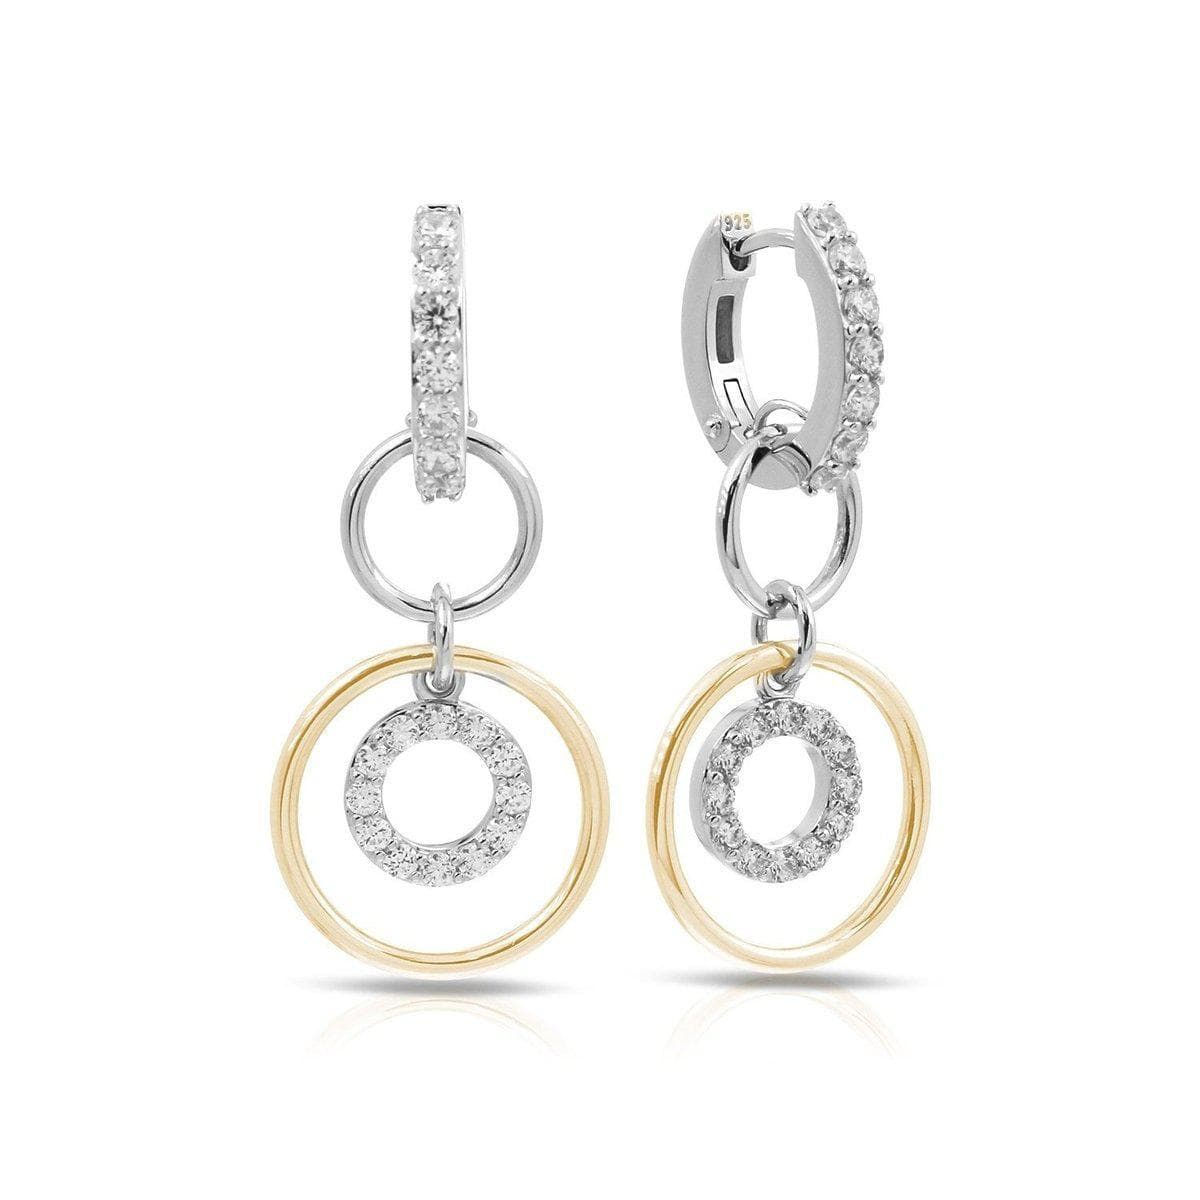 Concentra White and Yellow Earrings-Belle Etoile-Renee Taylor Gallery